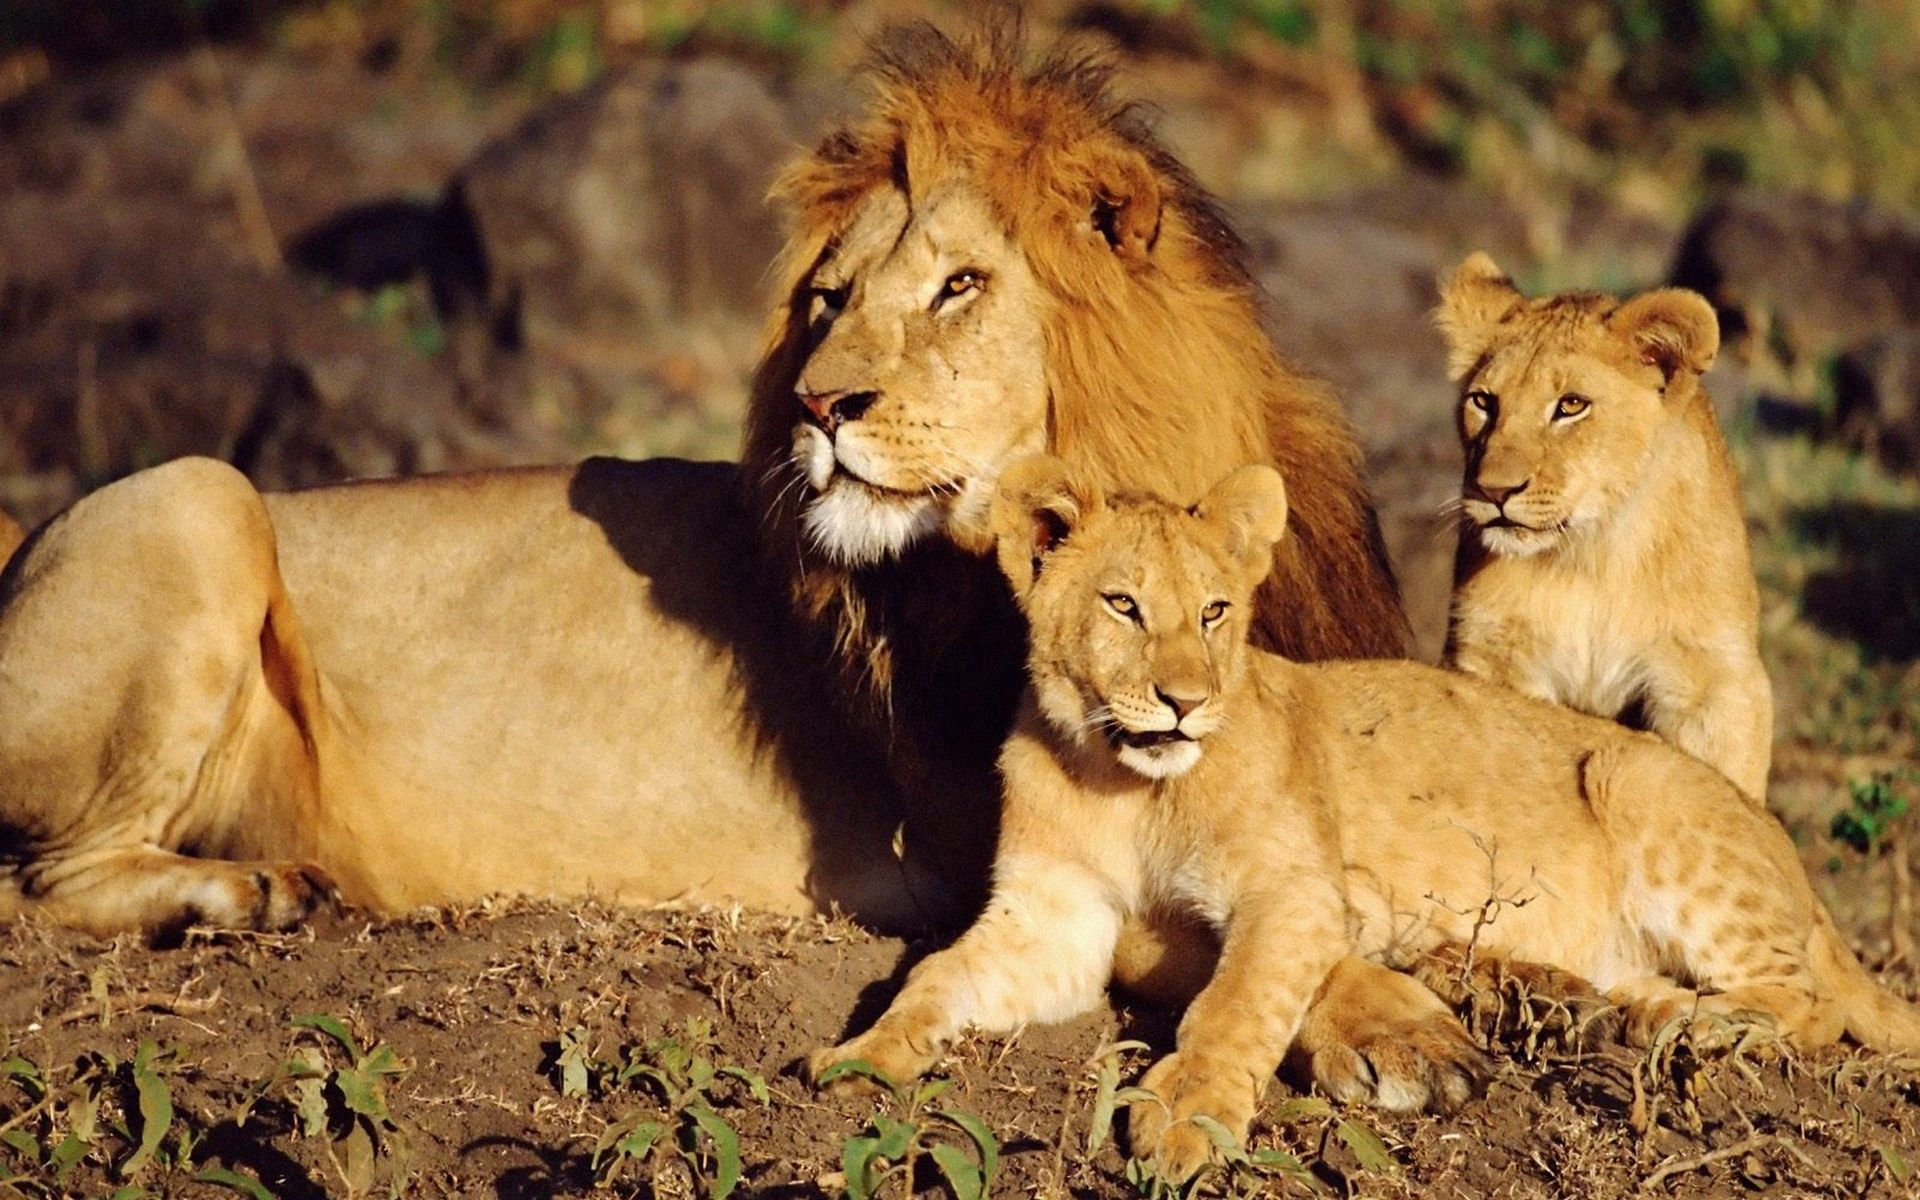 54191 download wallpaper Animals, Family, Care, To Lie Down, Lie, Sun, Lions screensavers and pictures for free